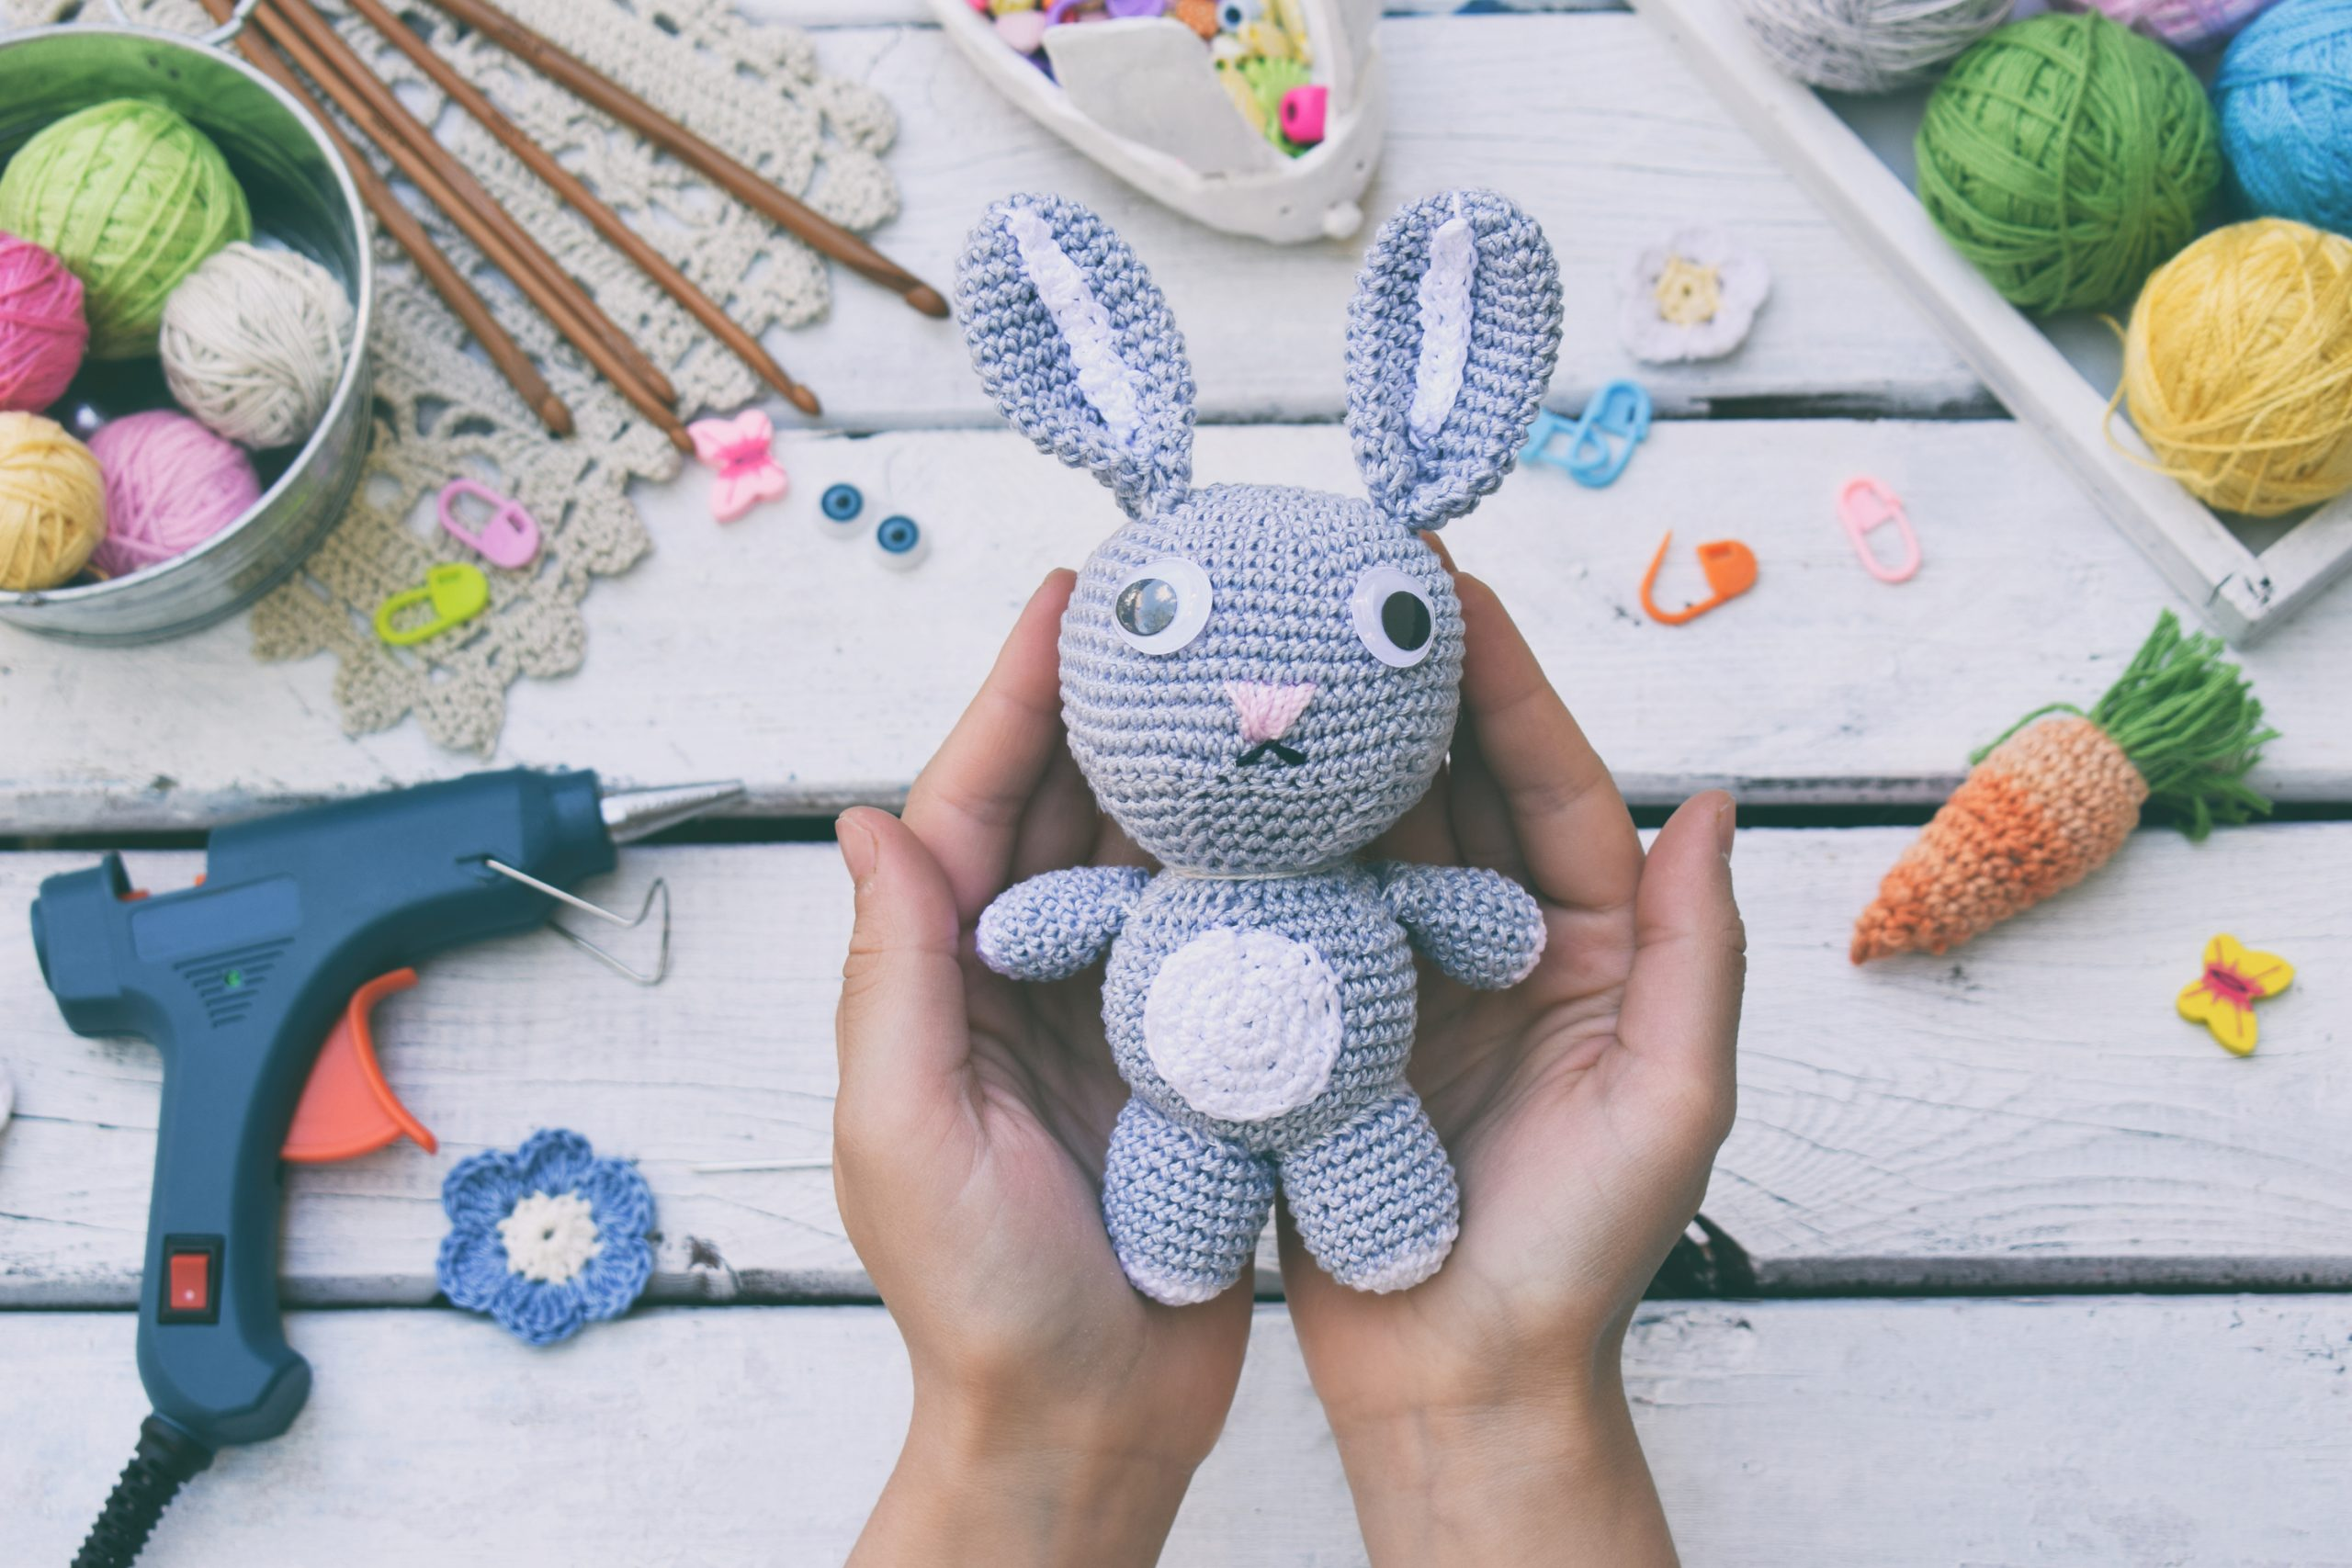 When I stumbled upon an adorable crochet peeps pattern I knew that I absolutely had to share. Keep reading for these super cute (and free!) crochet peeps patterns so you can make your own adorable bunny!